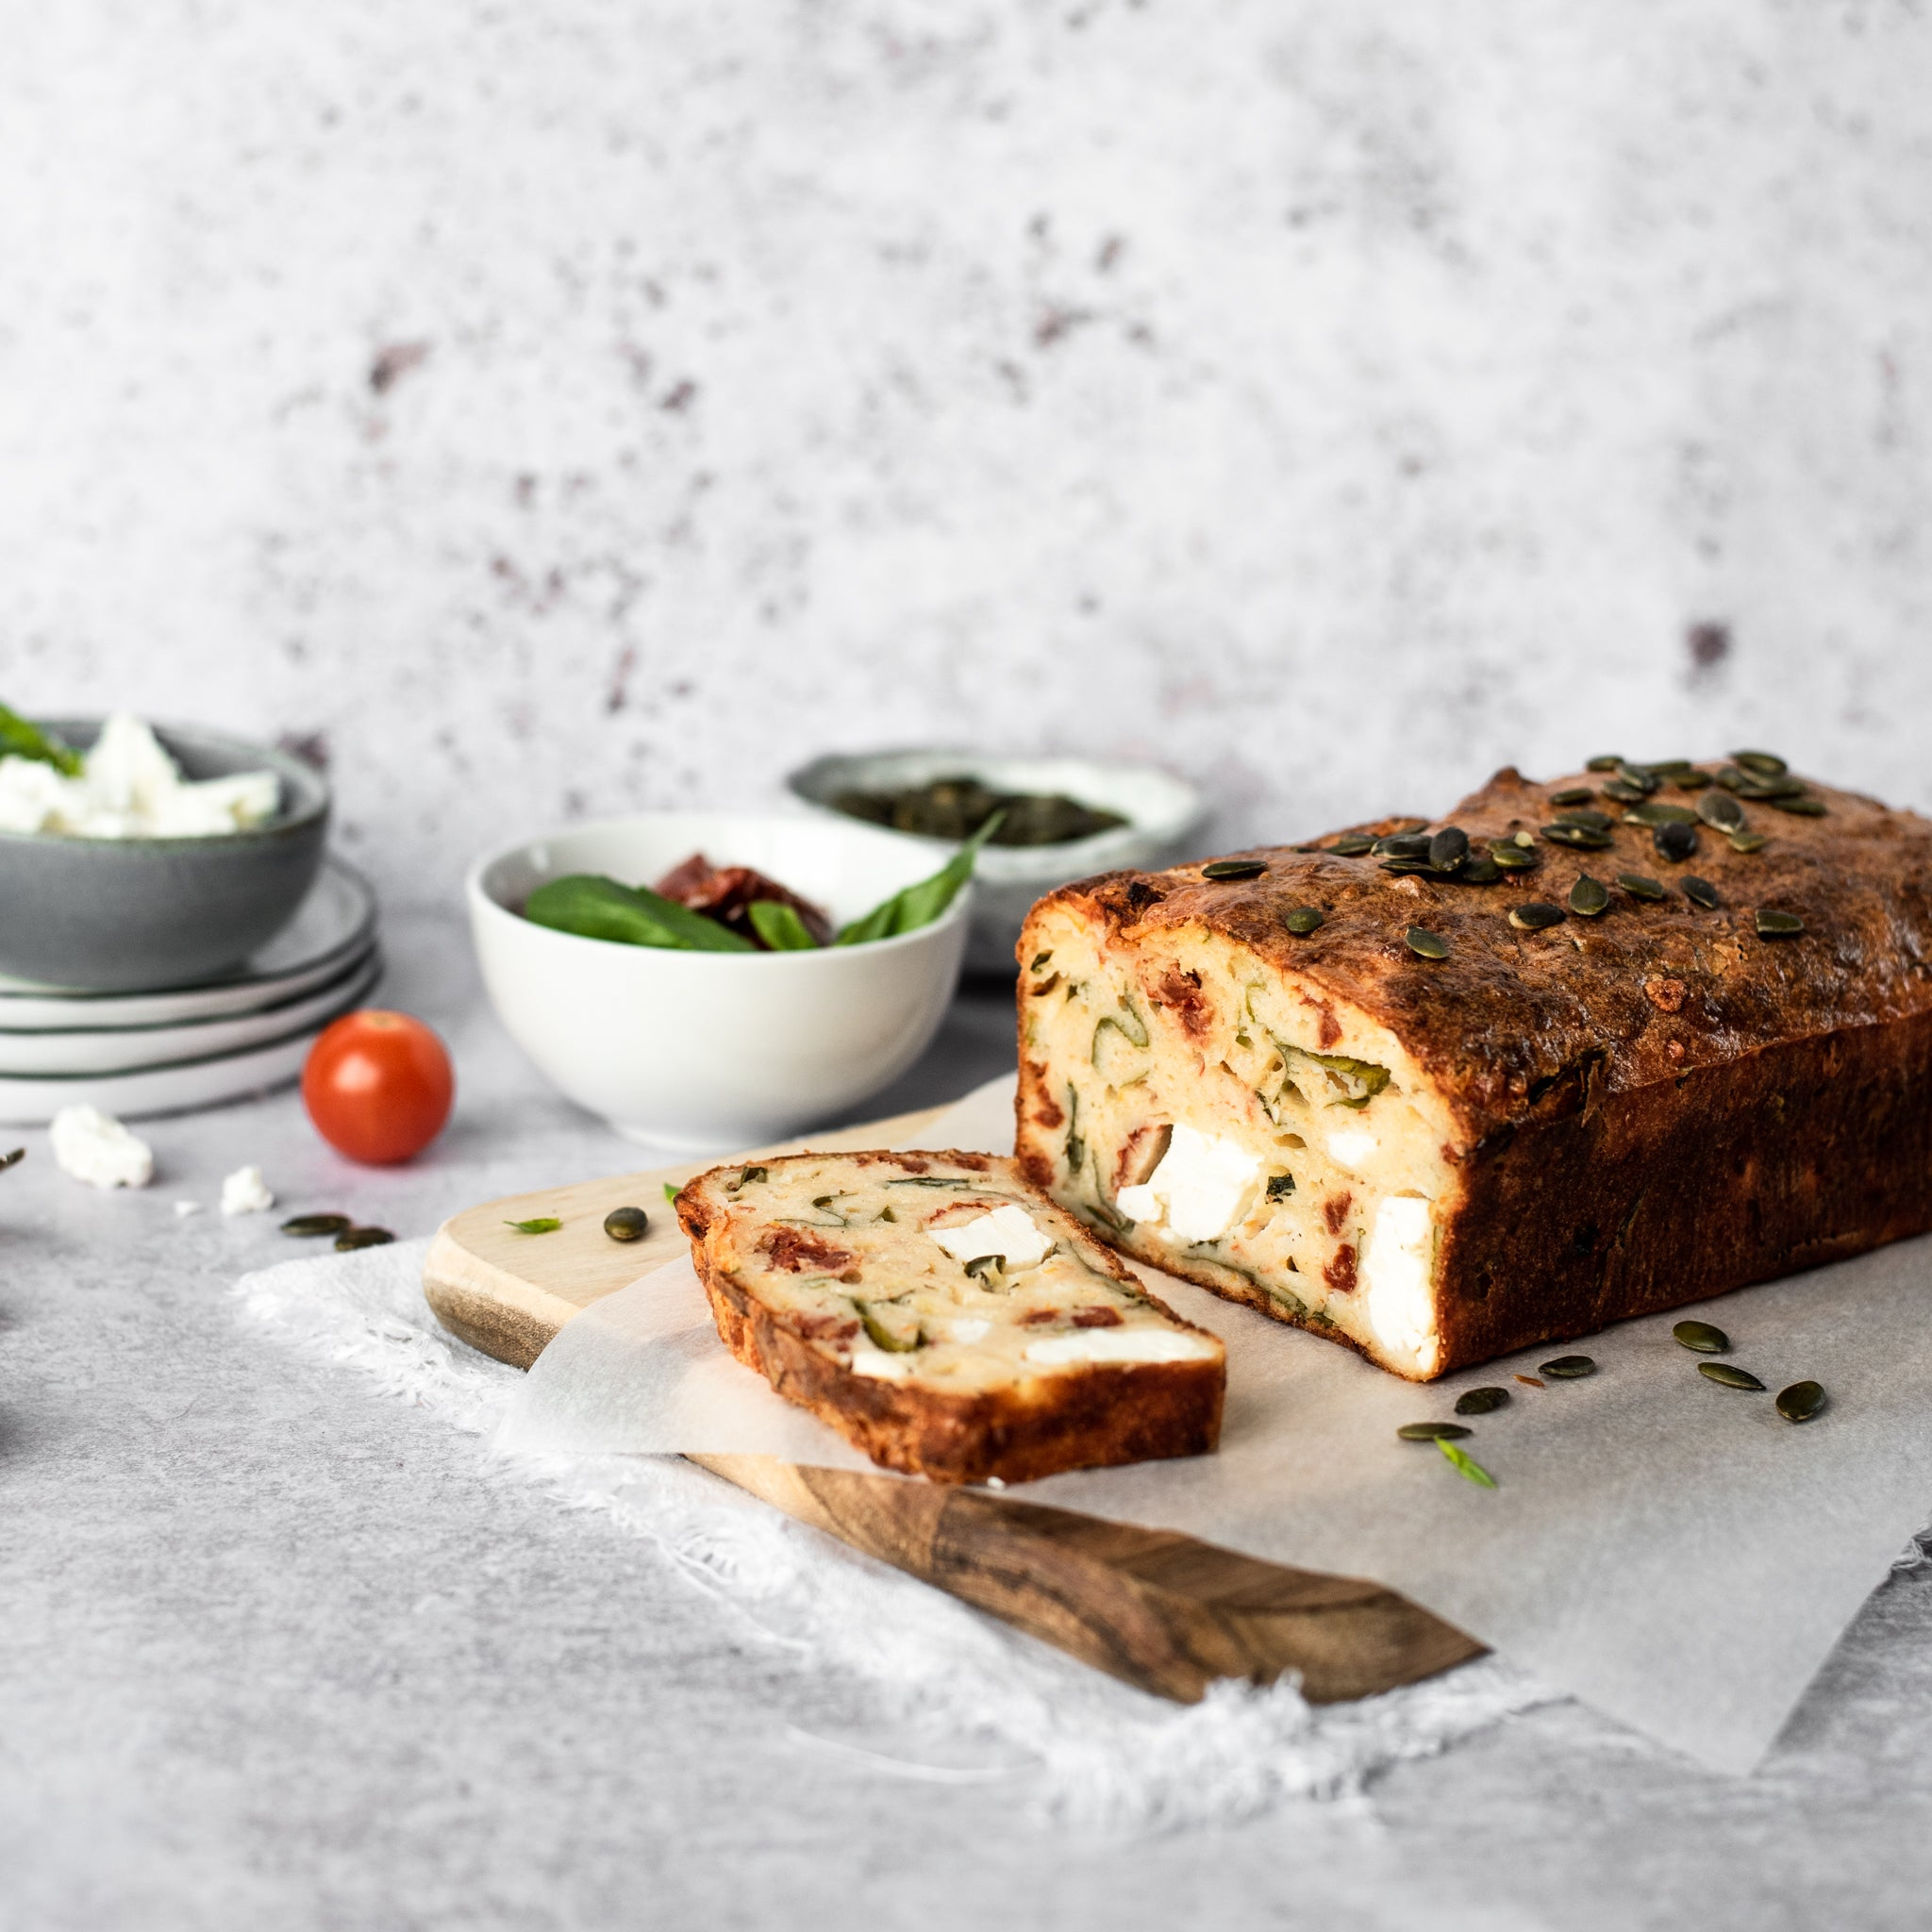 Feta and tomato loaf with slice removed on a chopping board